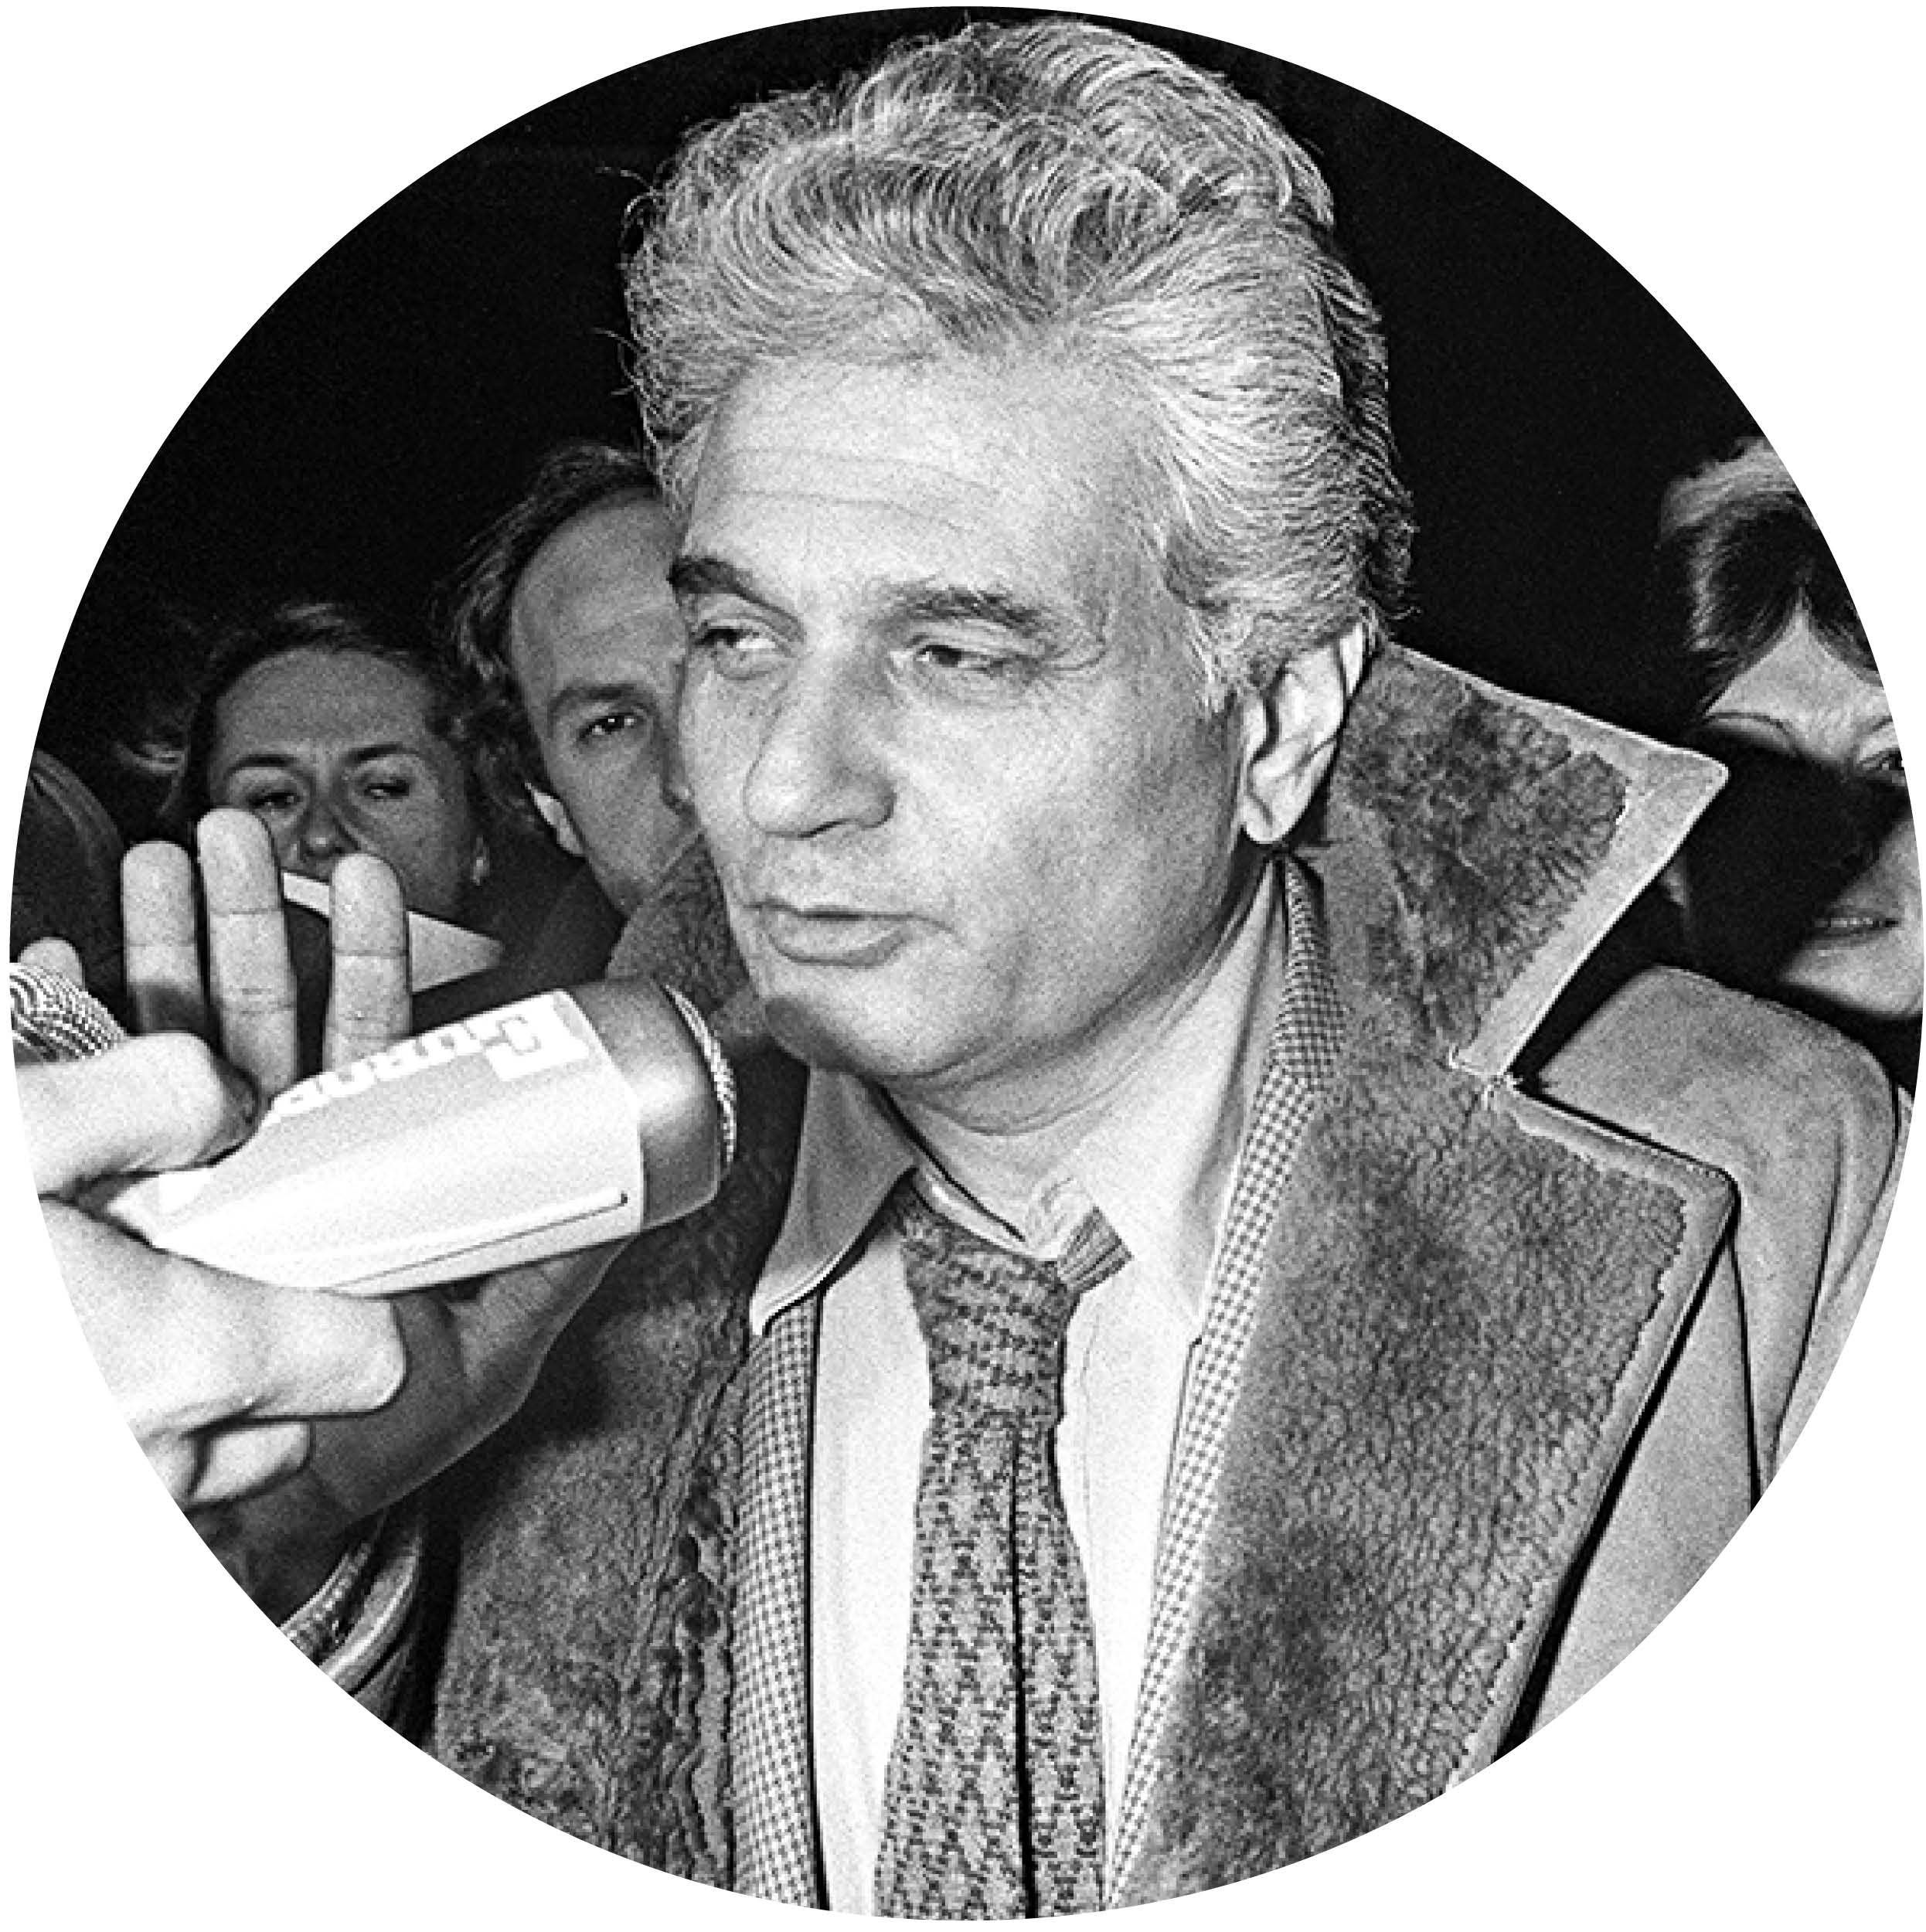 Postmodernist philosopher Jacques Derrida.